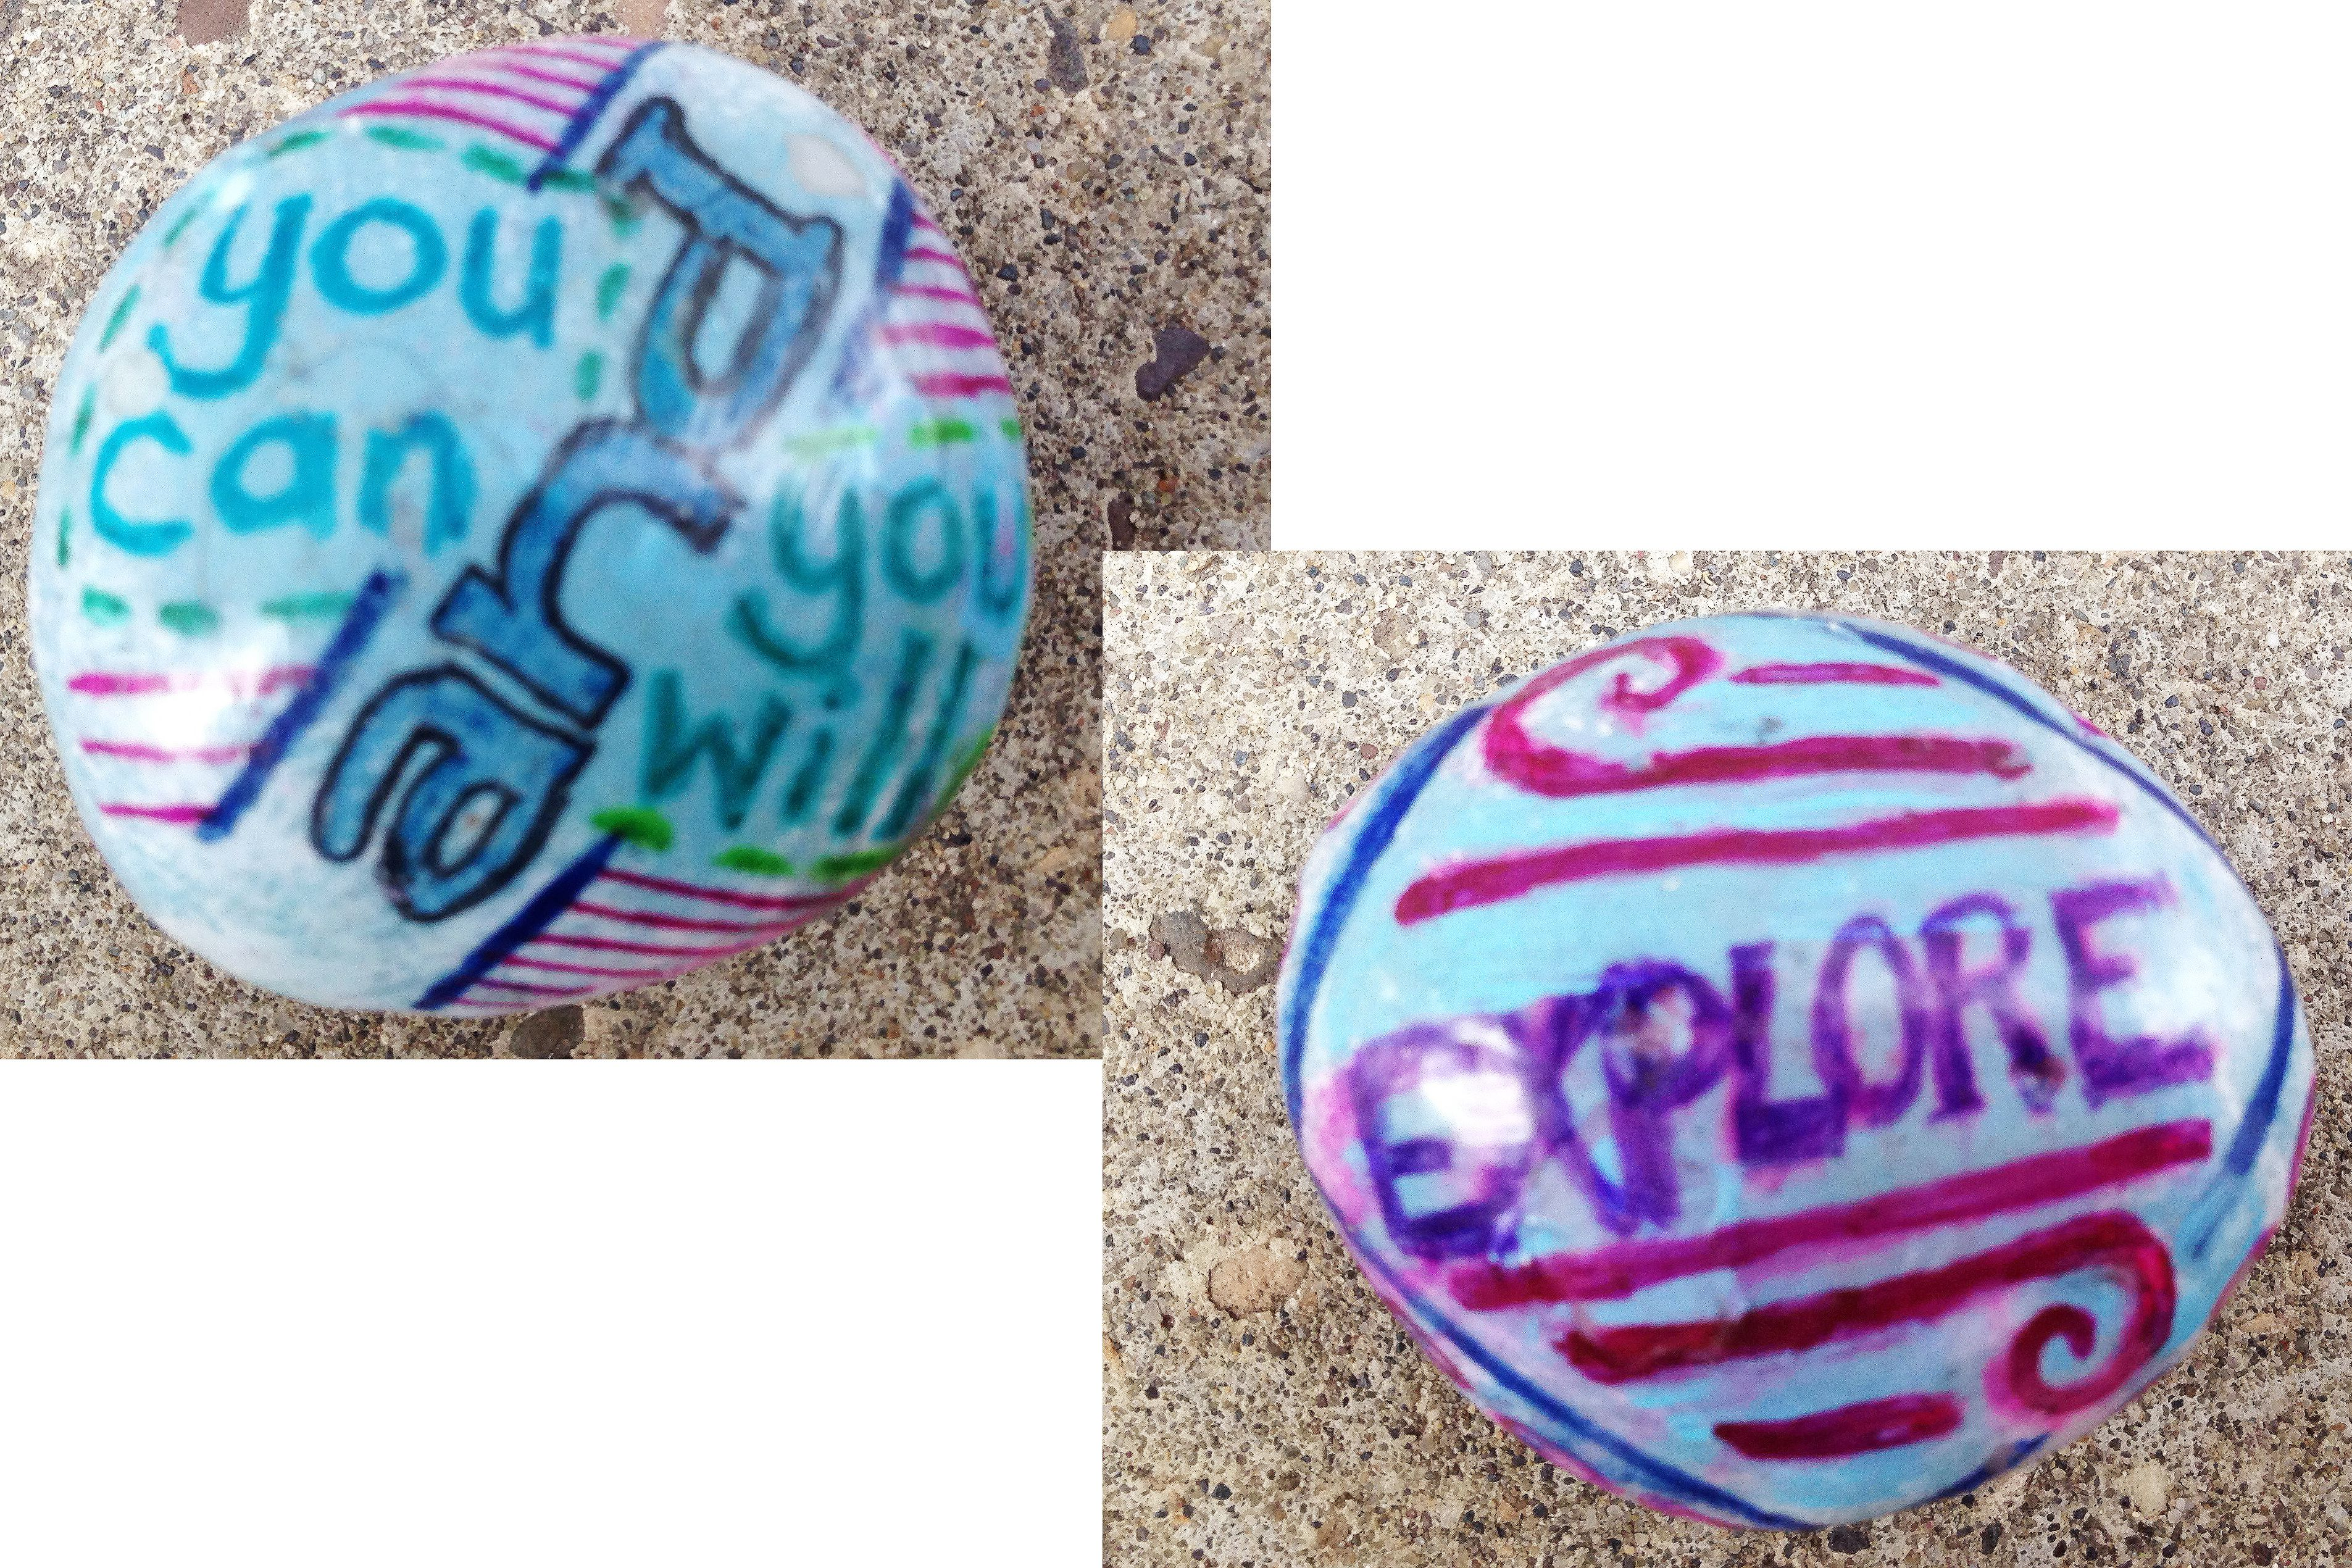 Rocks I have painted and leave for others to find